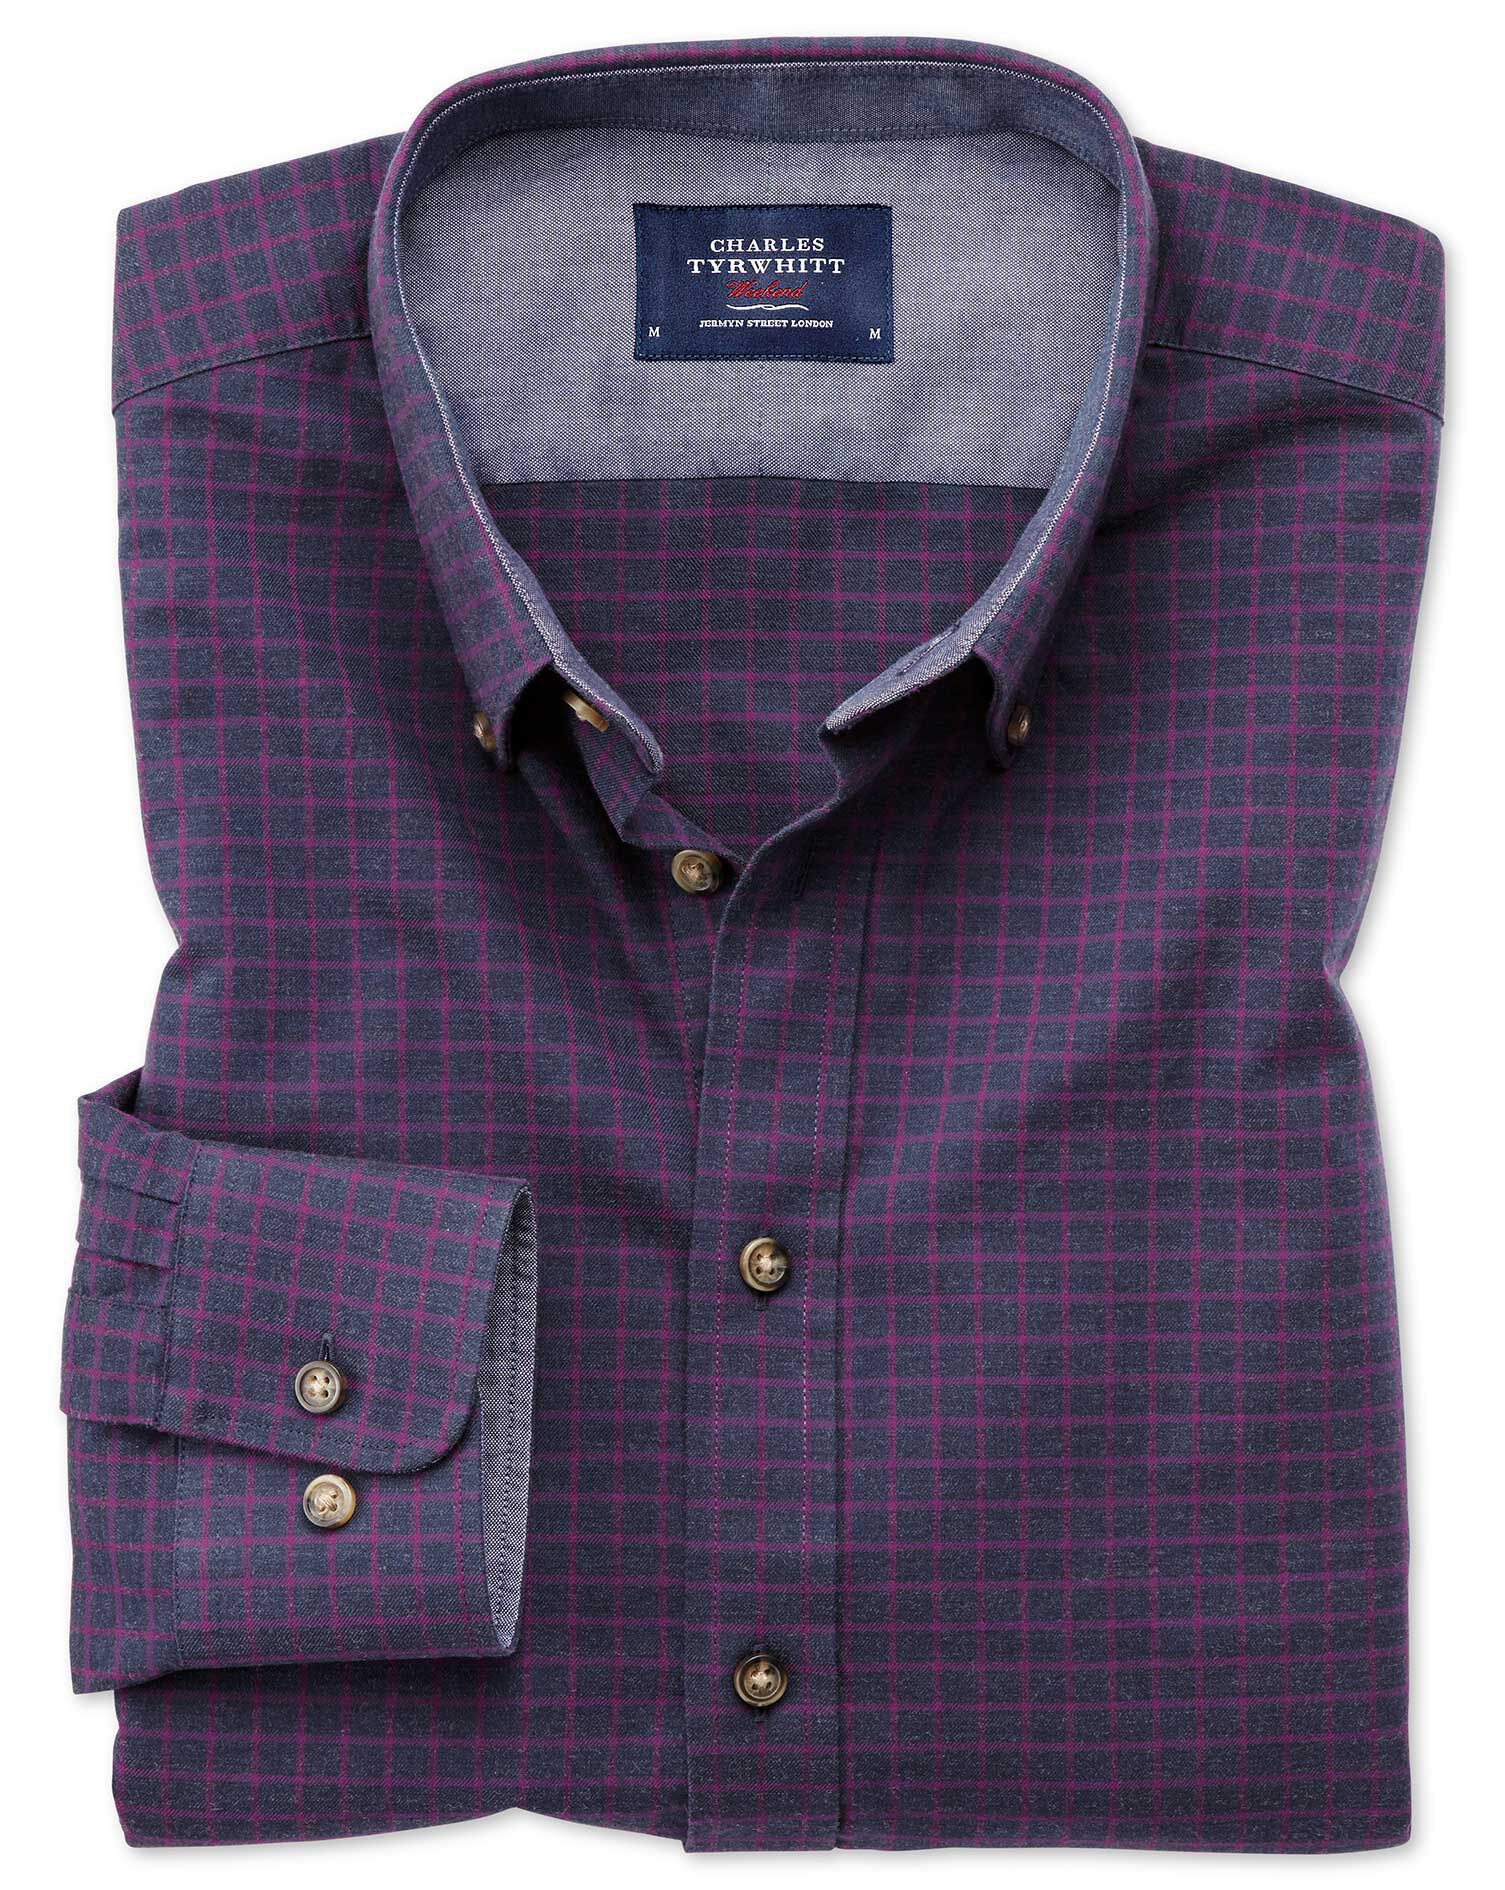 Slim Fit Button-Down Soft Cotton Navy Blue and Berry Check Shirt Single Cuff Size XS by Charles Tyrw